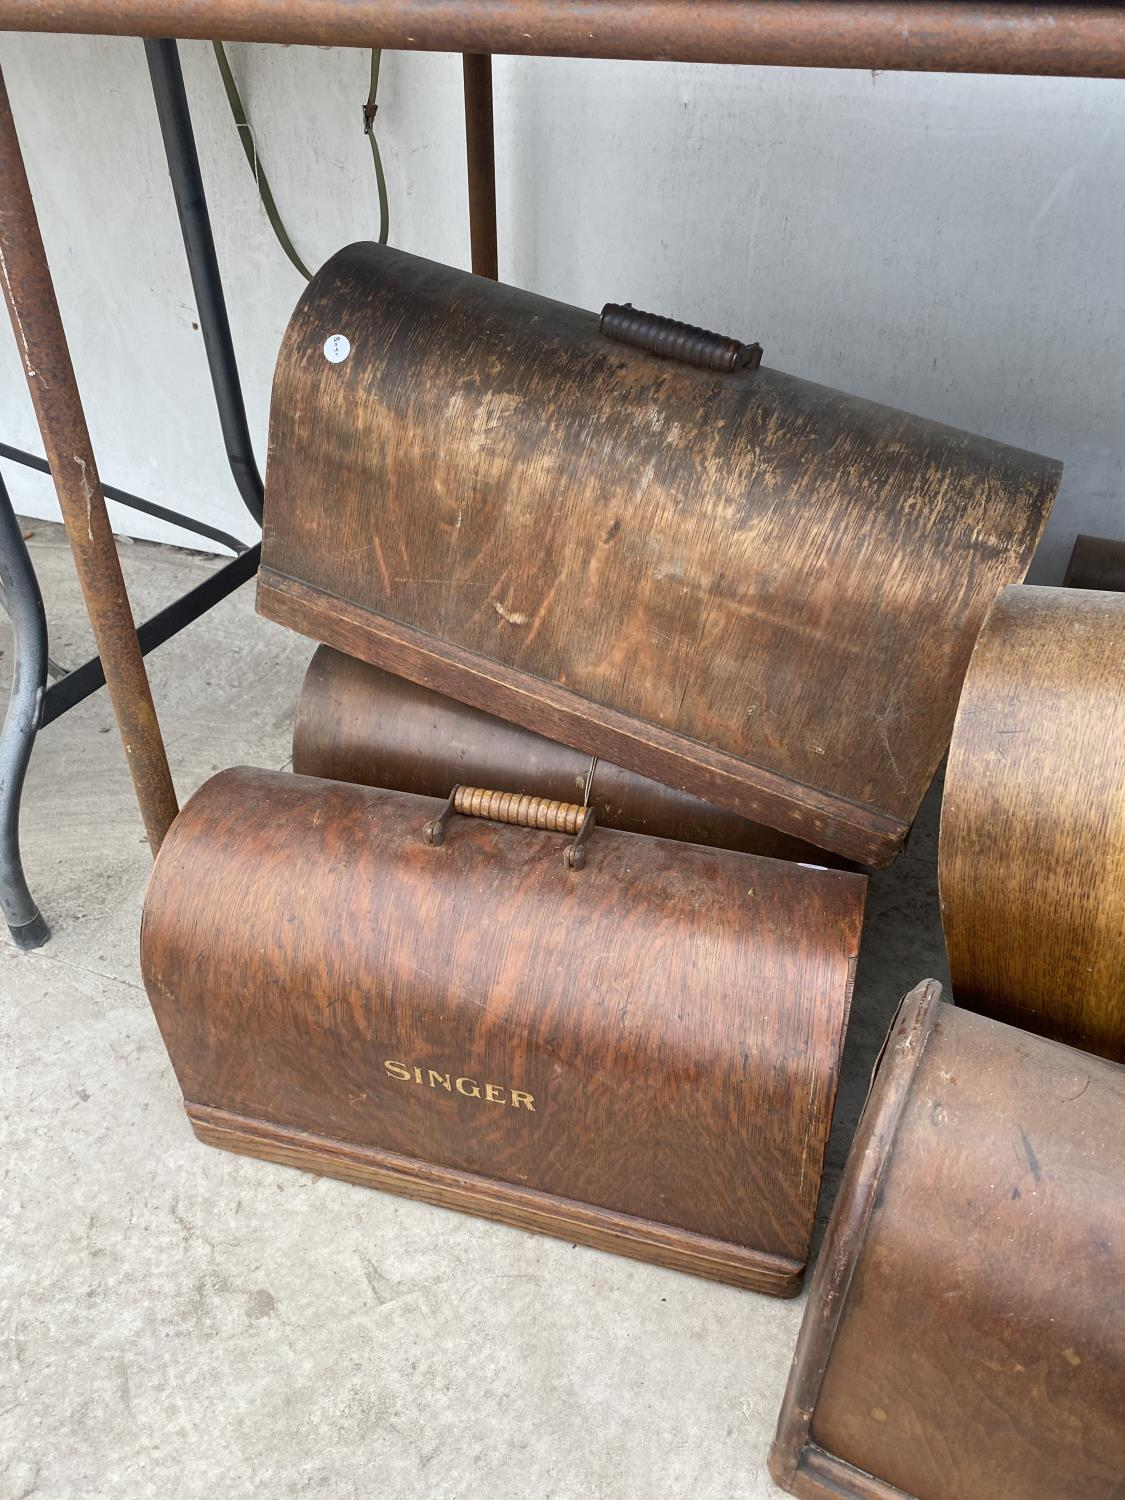 A LARGE QUANTITY OF SINGER SEWING MACHINE CASES - Image 2 of 5